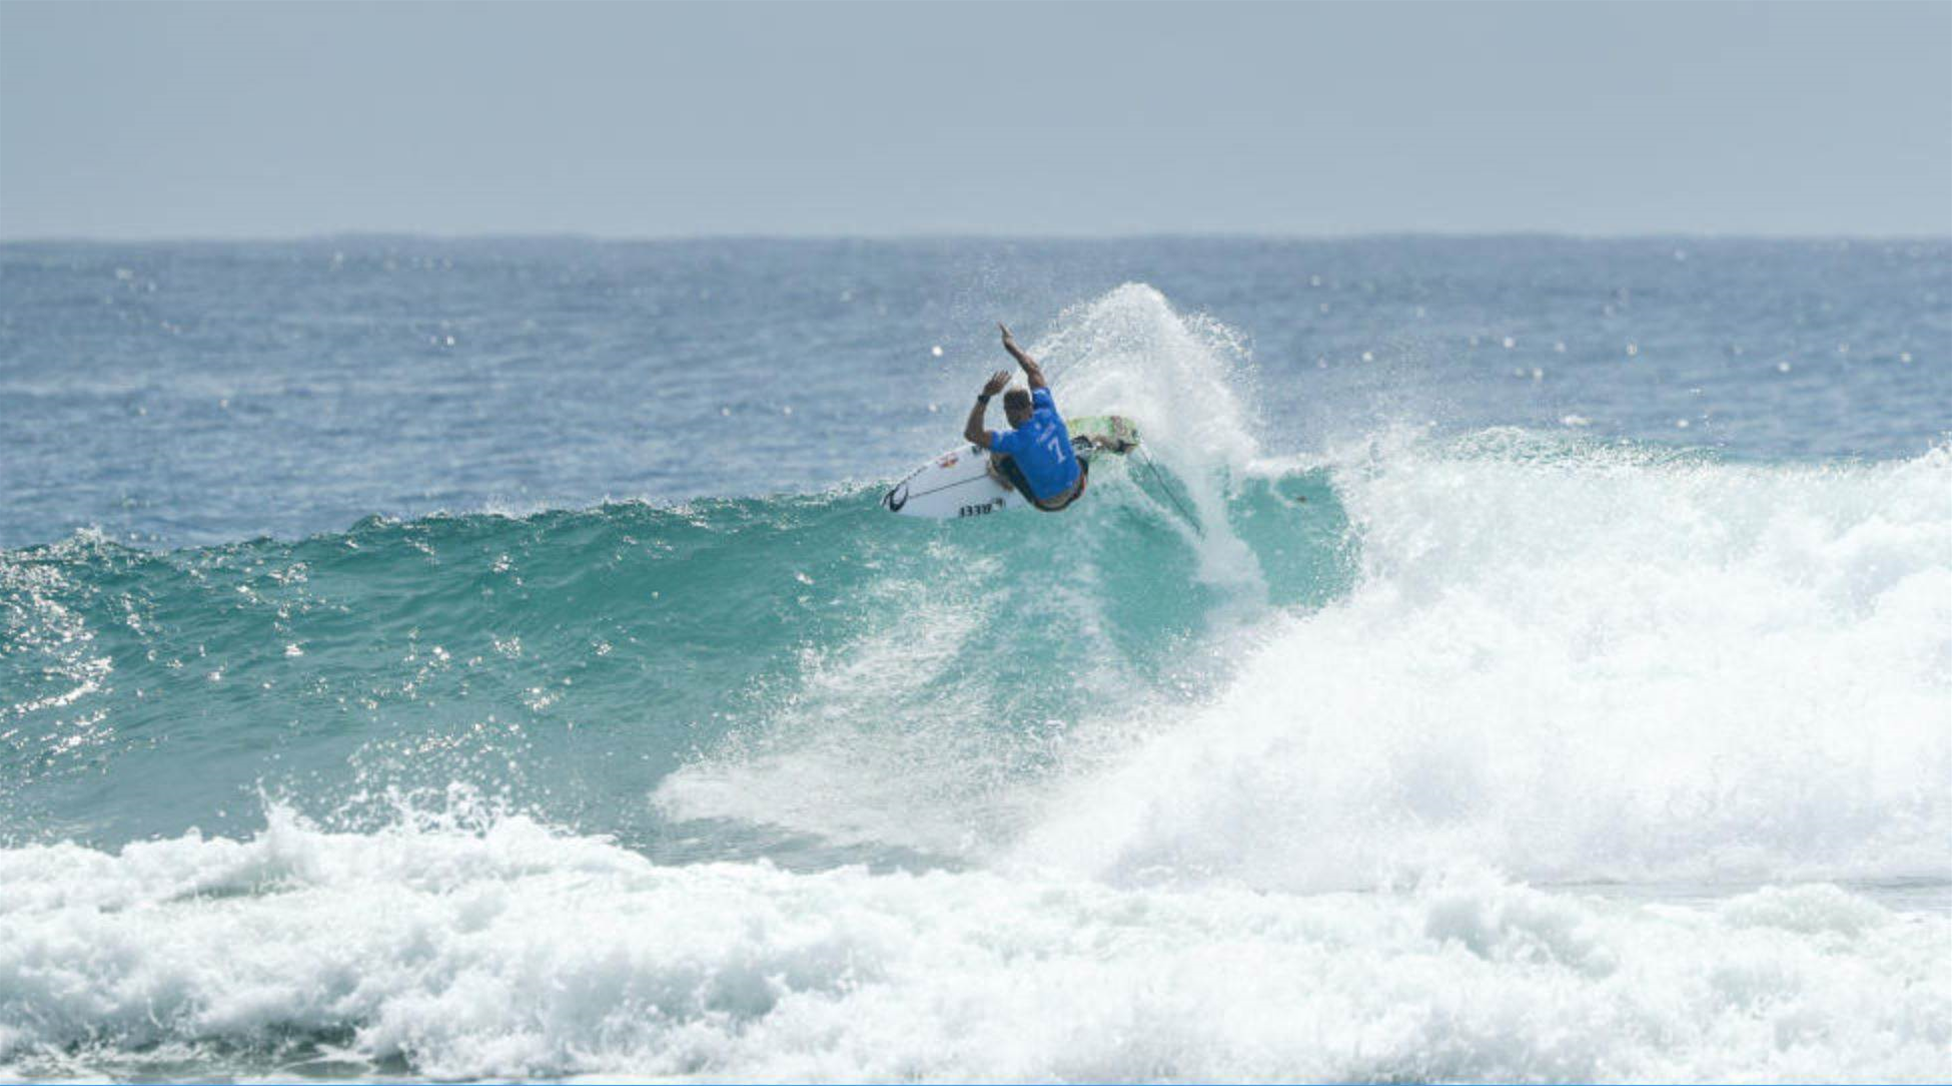 Parko and Mick look lethal while Owen returns with a win